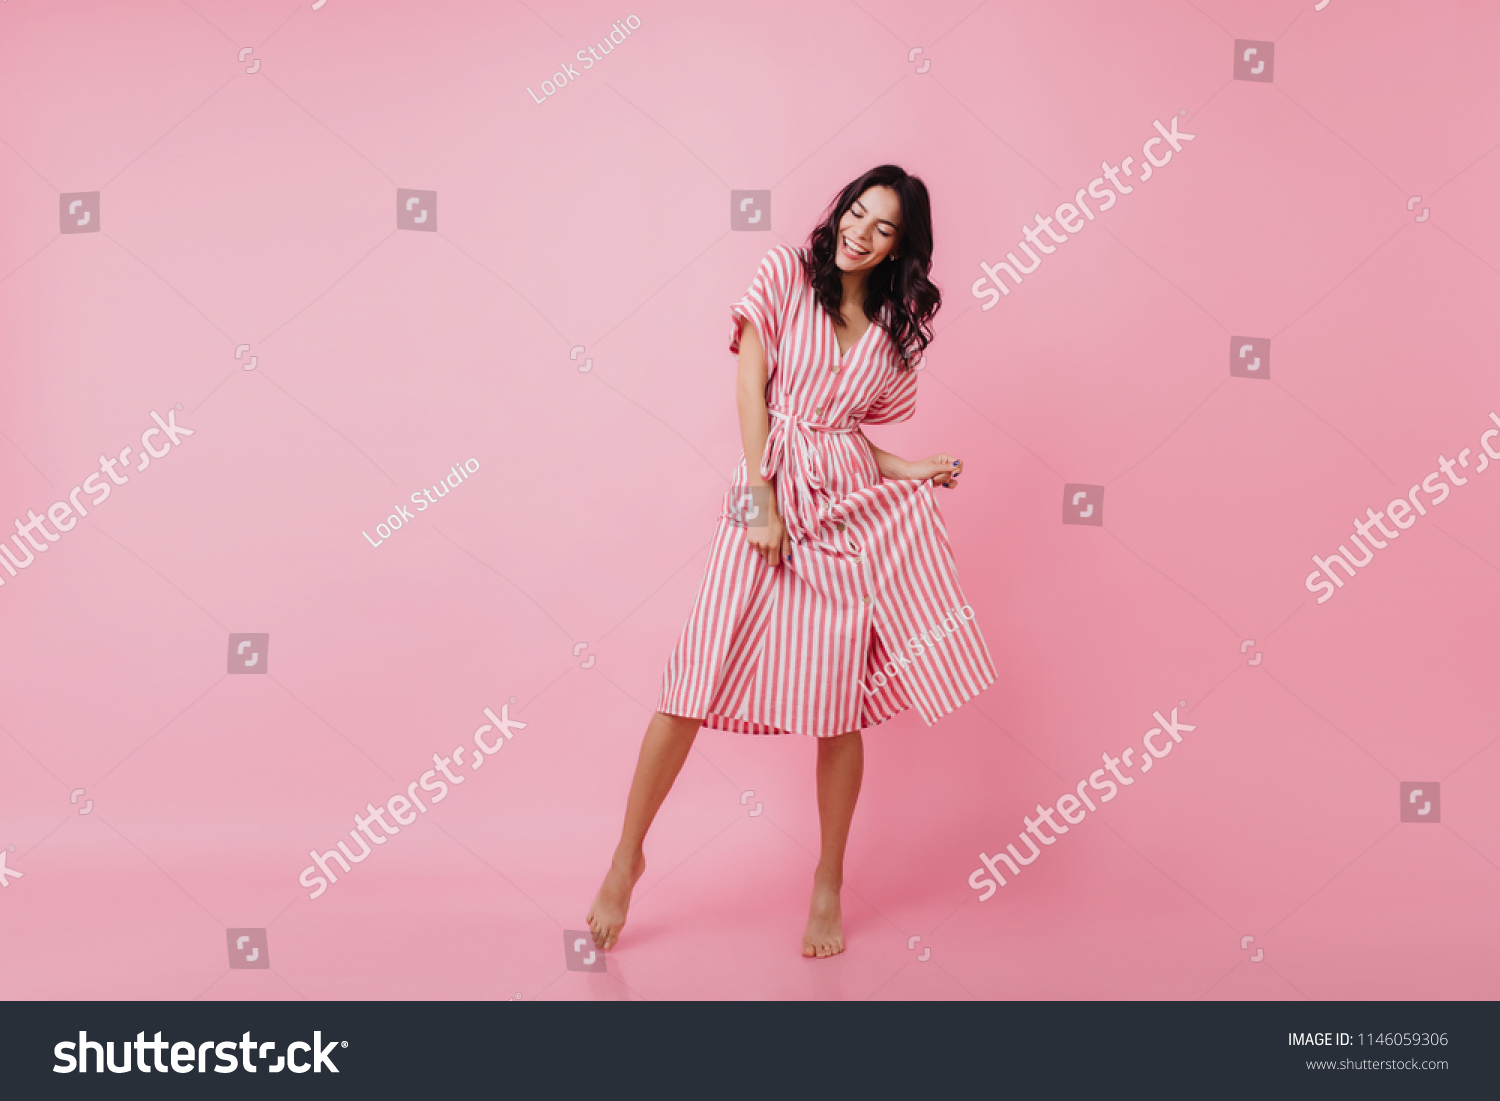 Shapely barefooted lady with tanned skin dancing on pink background. Happy caucasian girl in striped dress fooling around and laughing. #1146059306